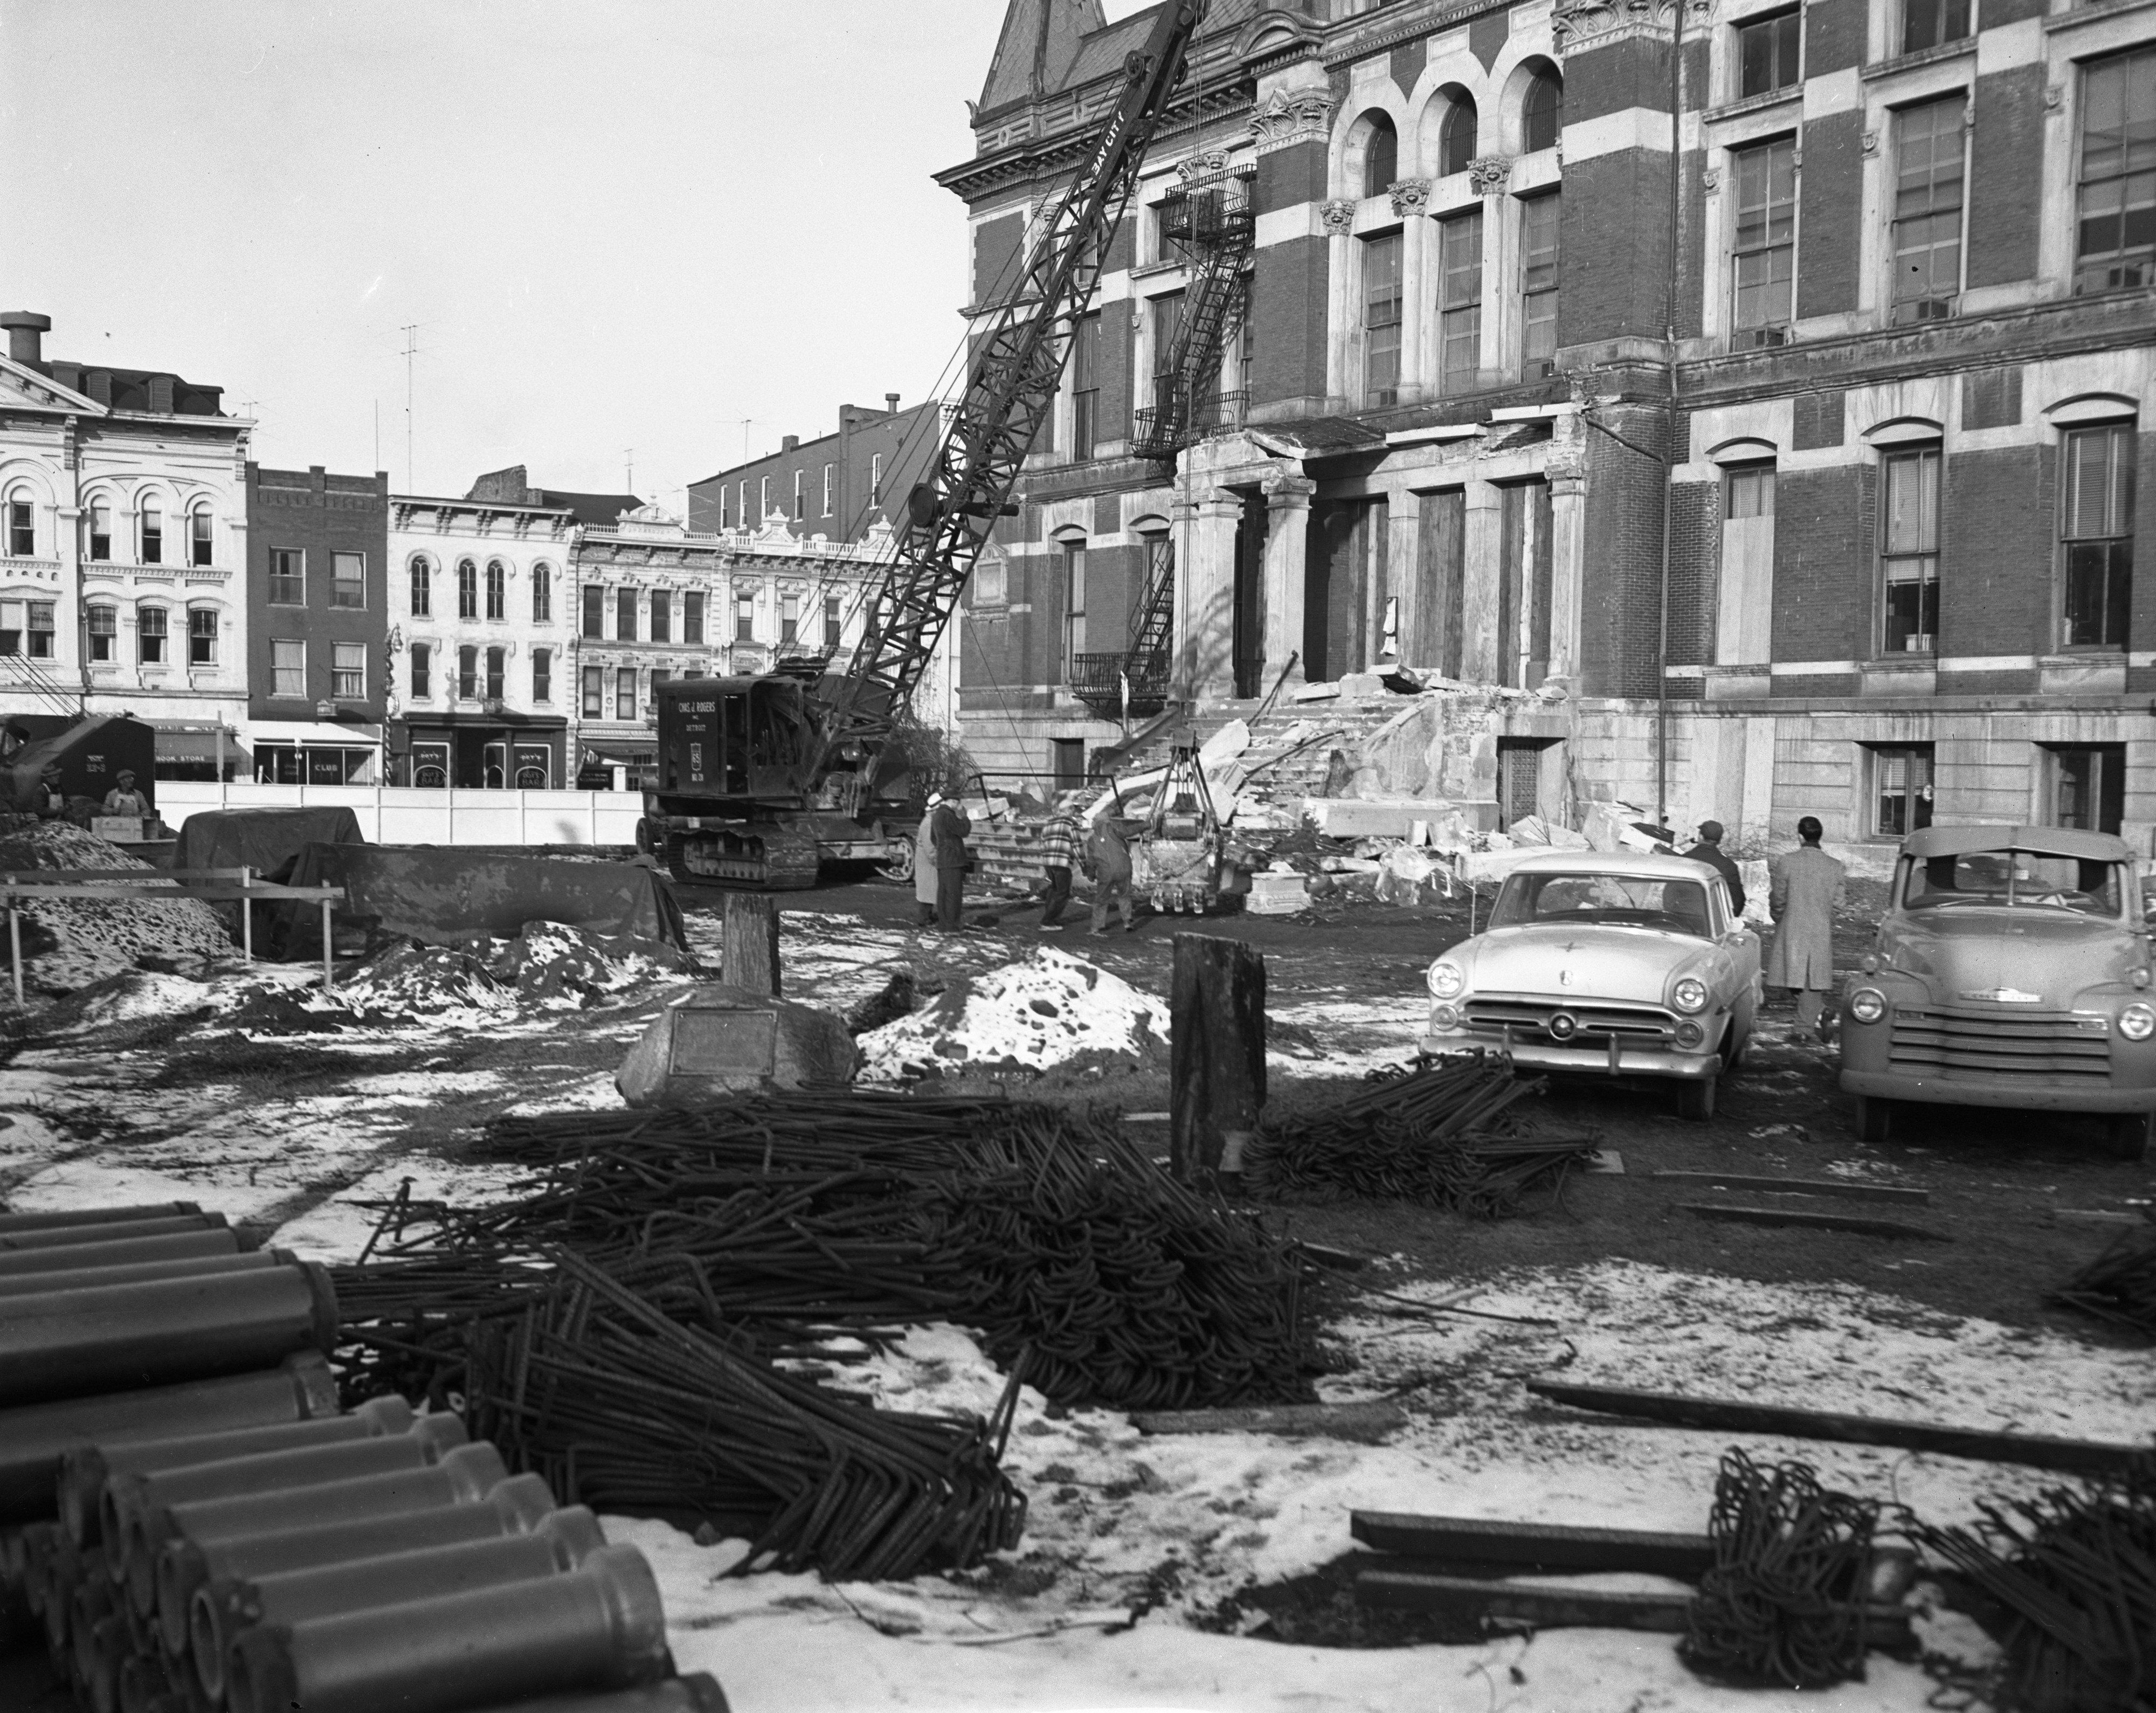 Tearing Down the South Entrance of the Old Courthouse, November 1953 image